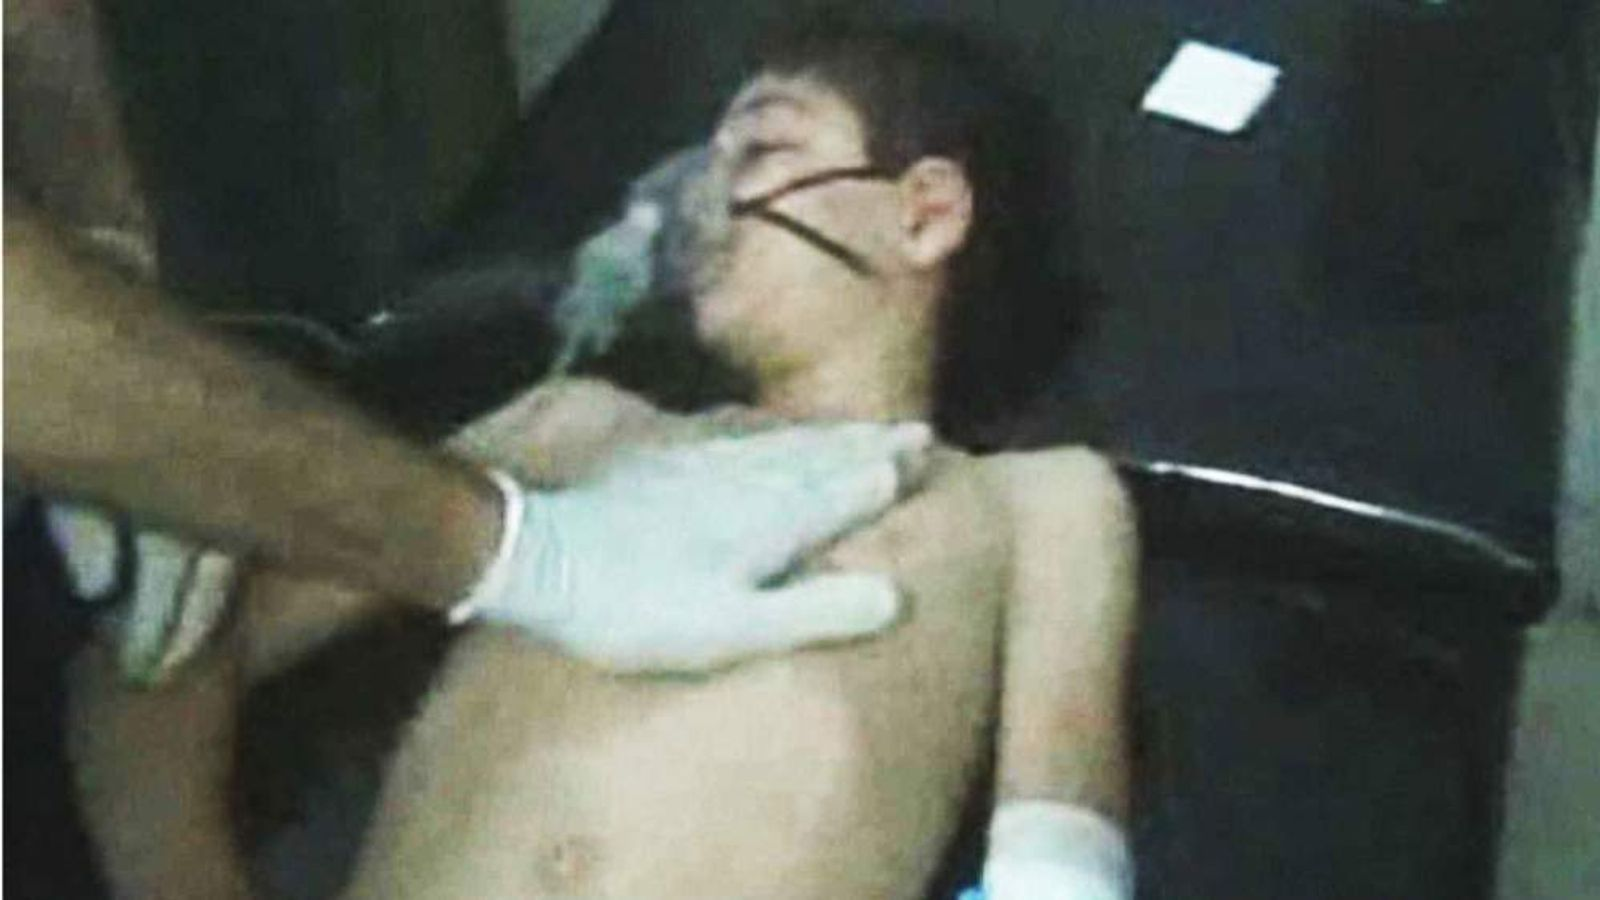 A child receives treatment in a make-shift hospital in Syria